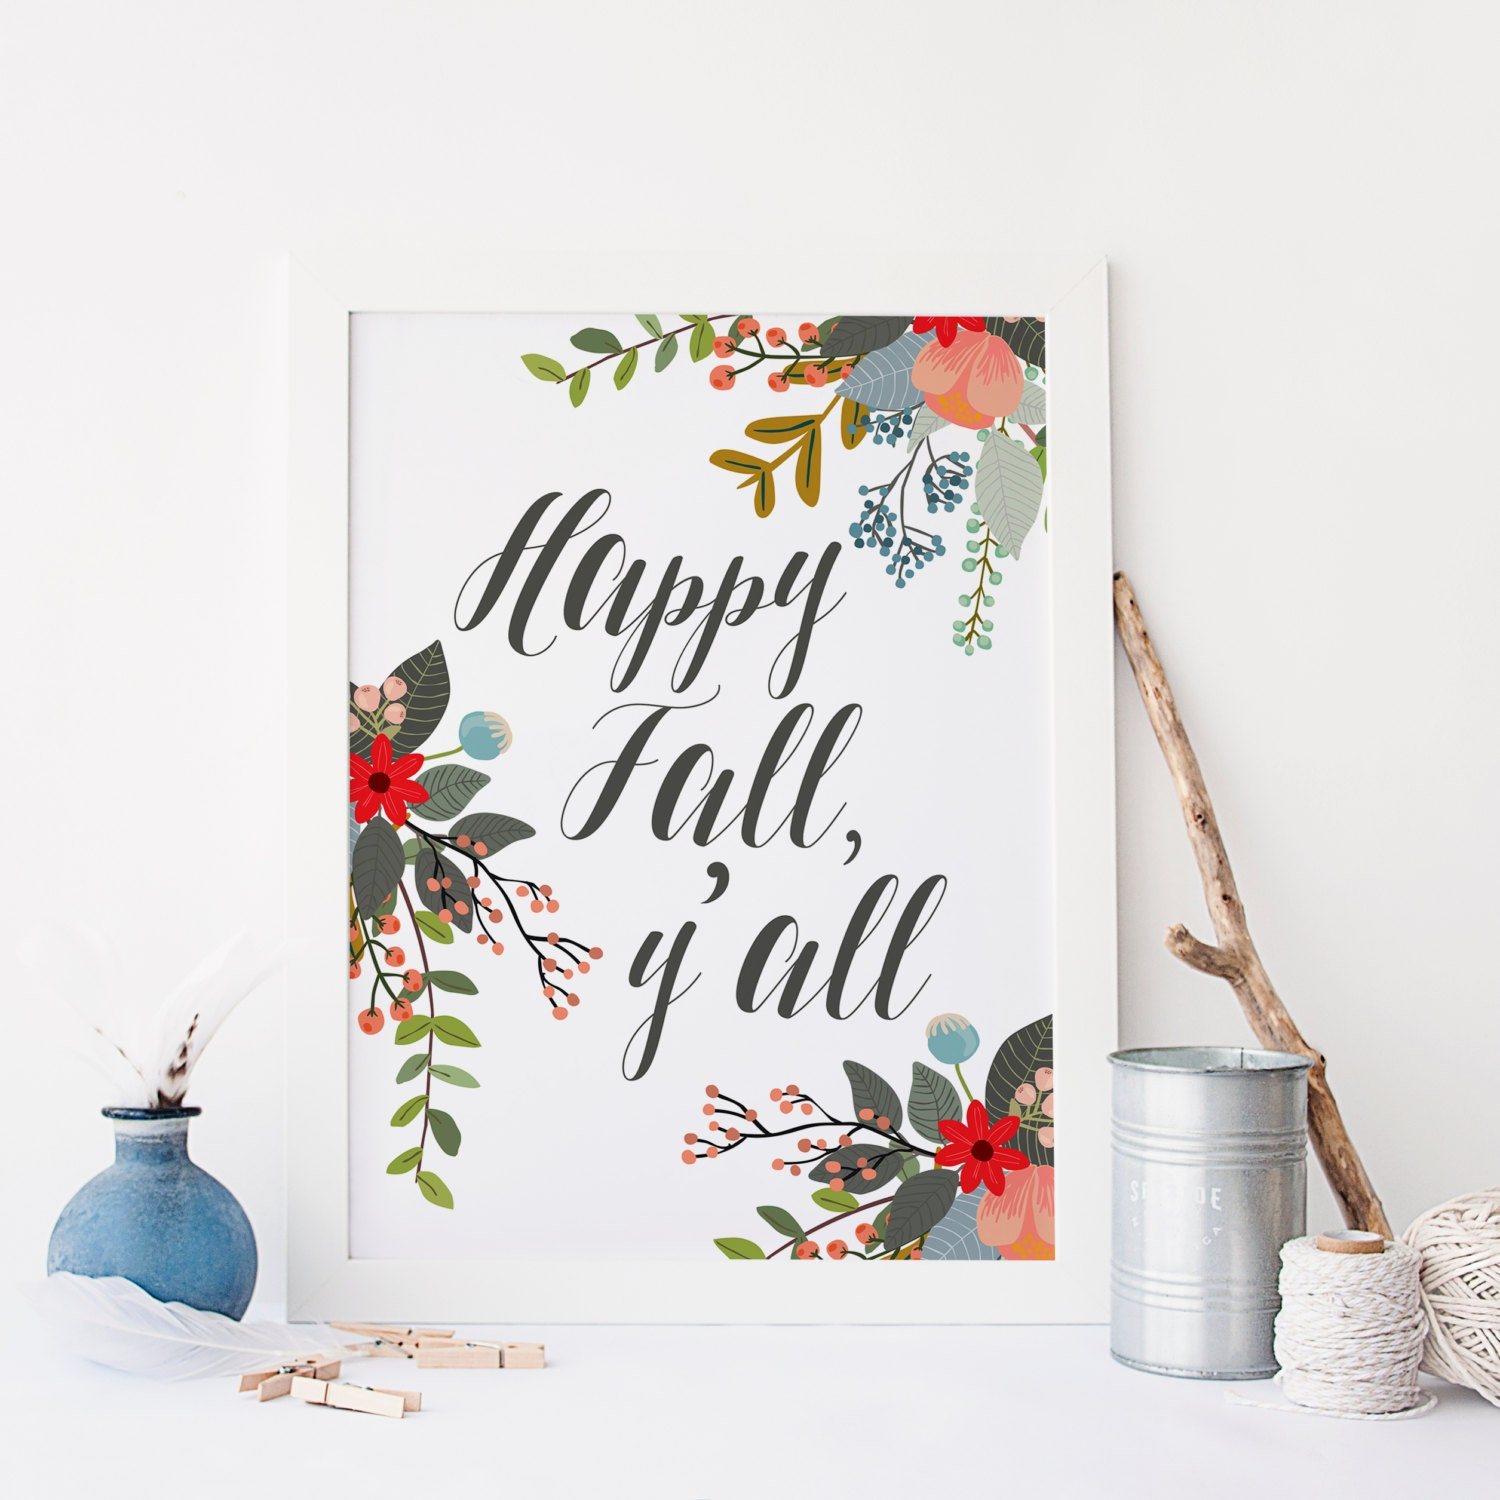 This is a photo of Universal Happy Fall Yall Printable